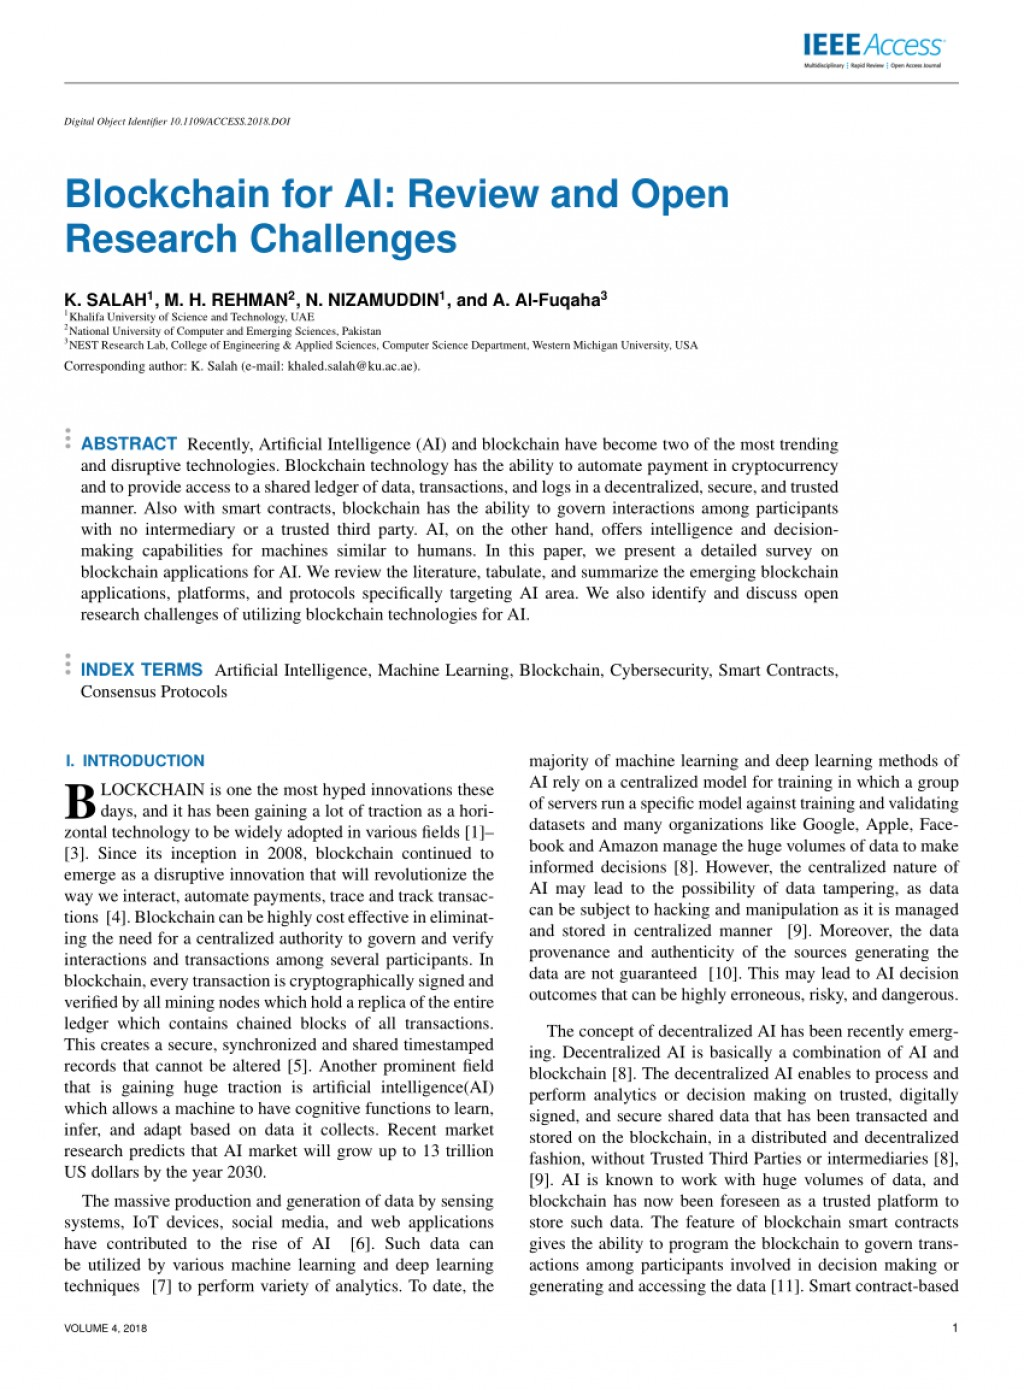 003 Largepreview Artificial Intelligence Research Paper Impressive 2018 Ieee Large